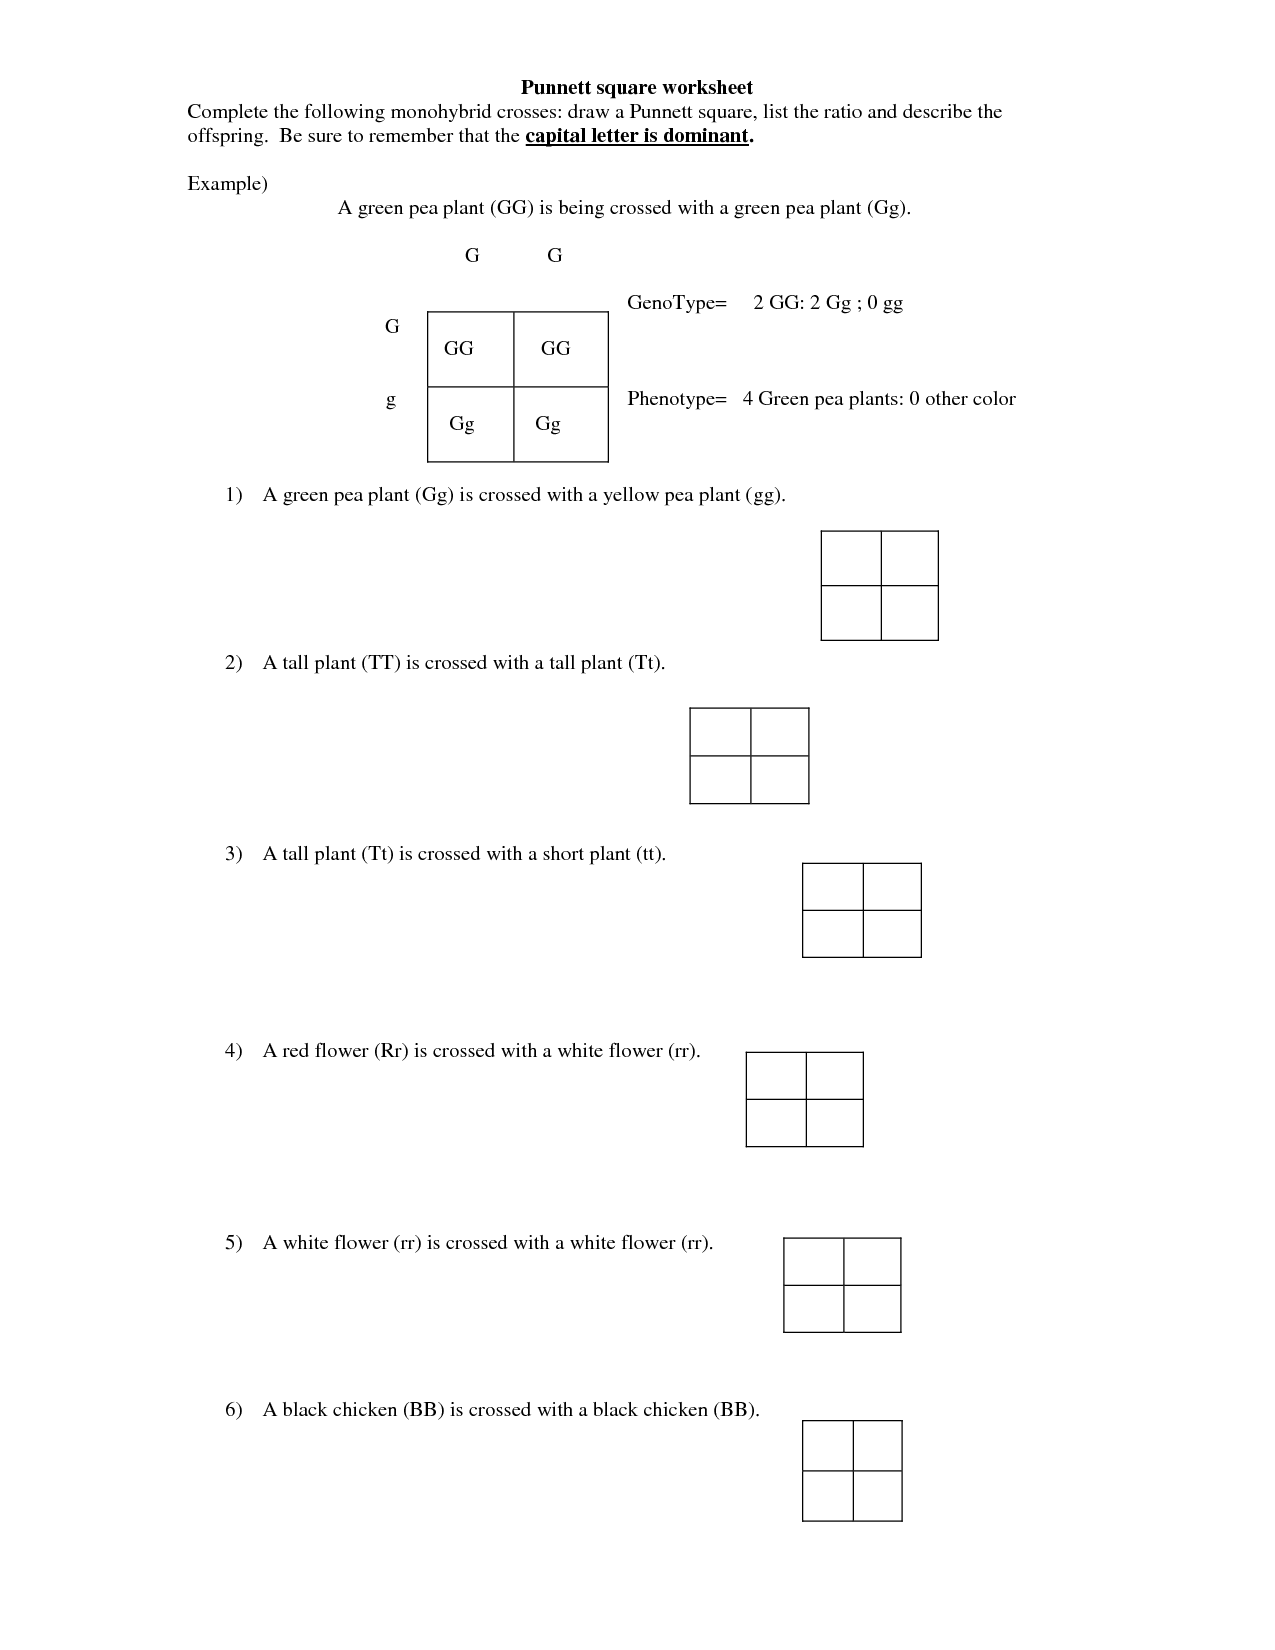 Worksheets Monohybrid Crosses Worksheet Answers monohybrid cross worksheet answers calleveryonedaveday worksheets on google search classroom